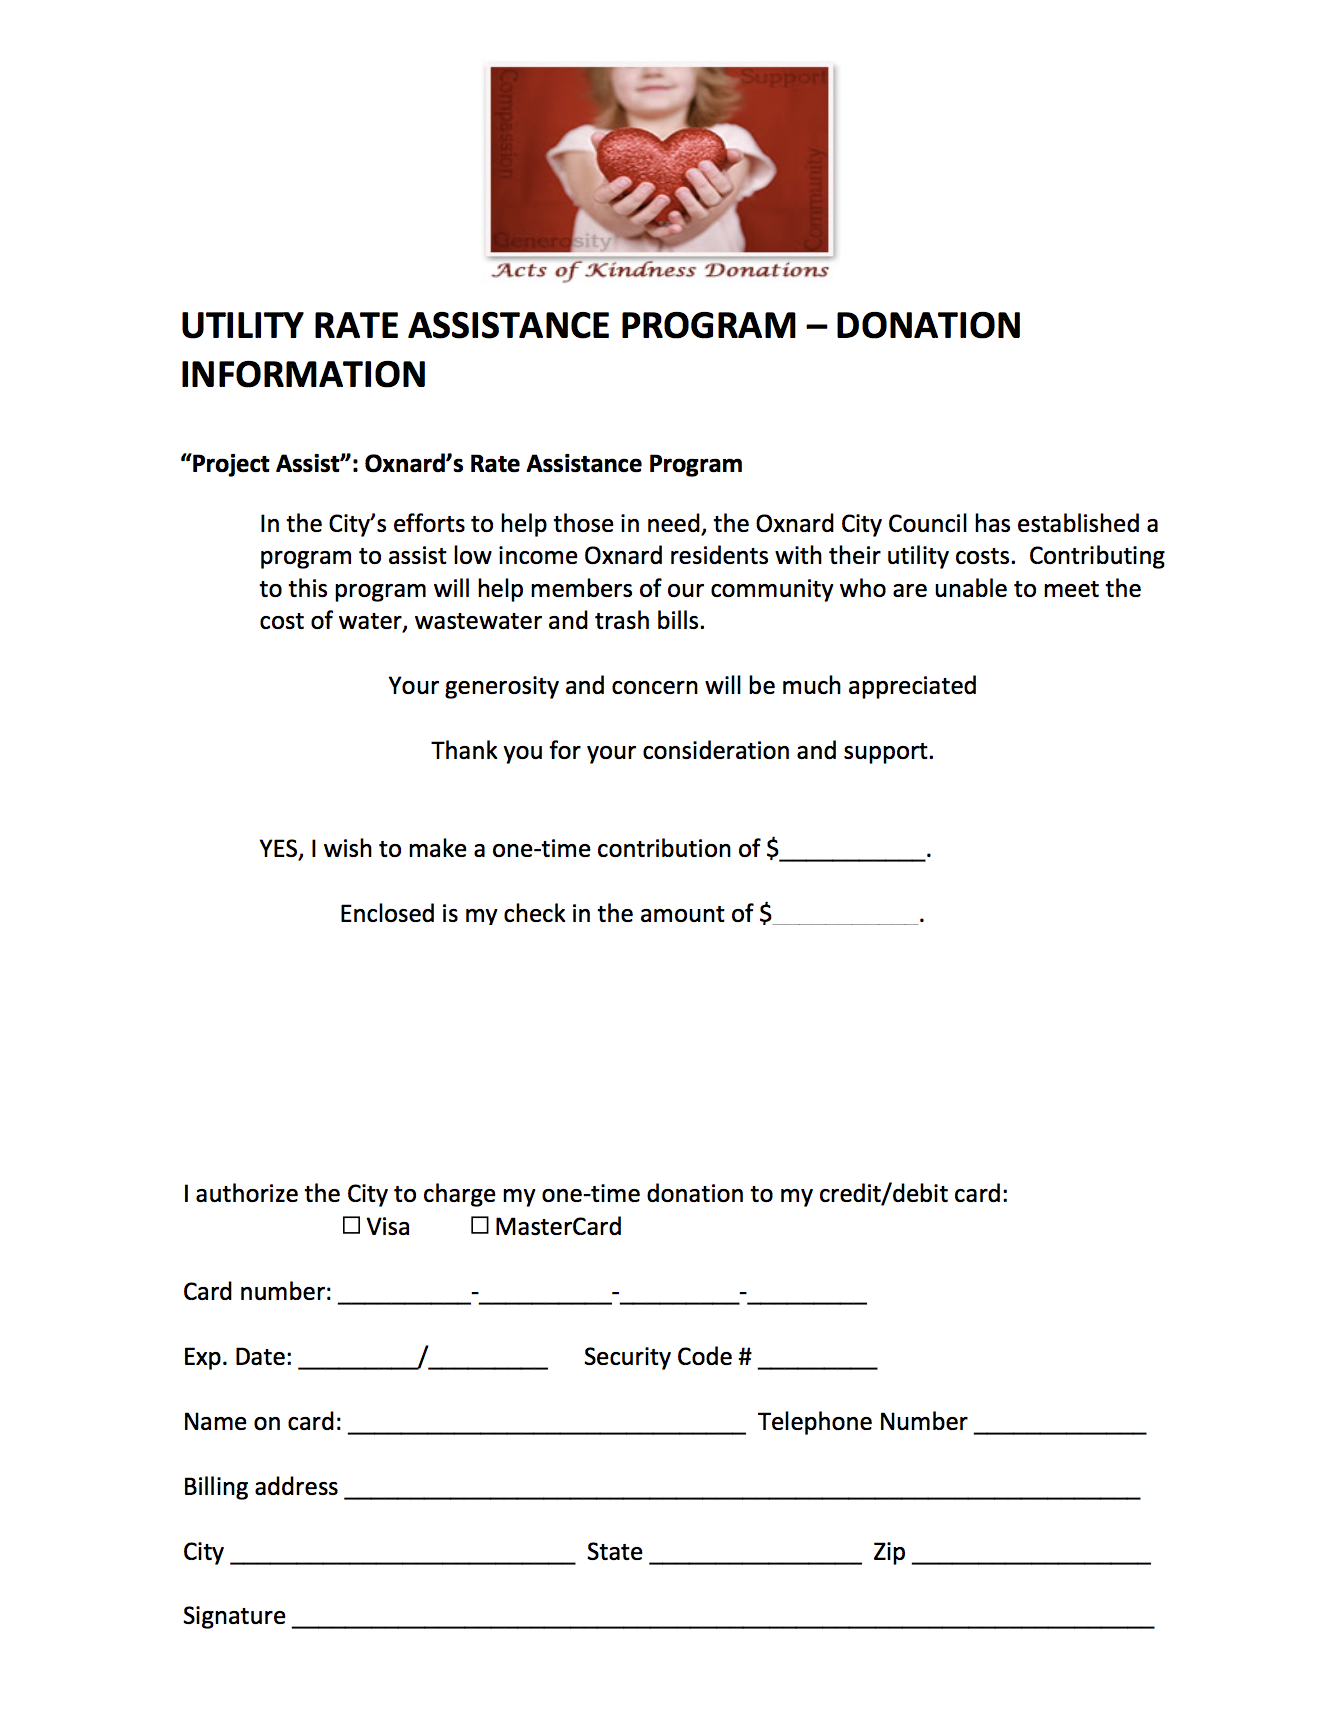 Rate Assistance Program - Donation Information